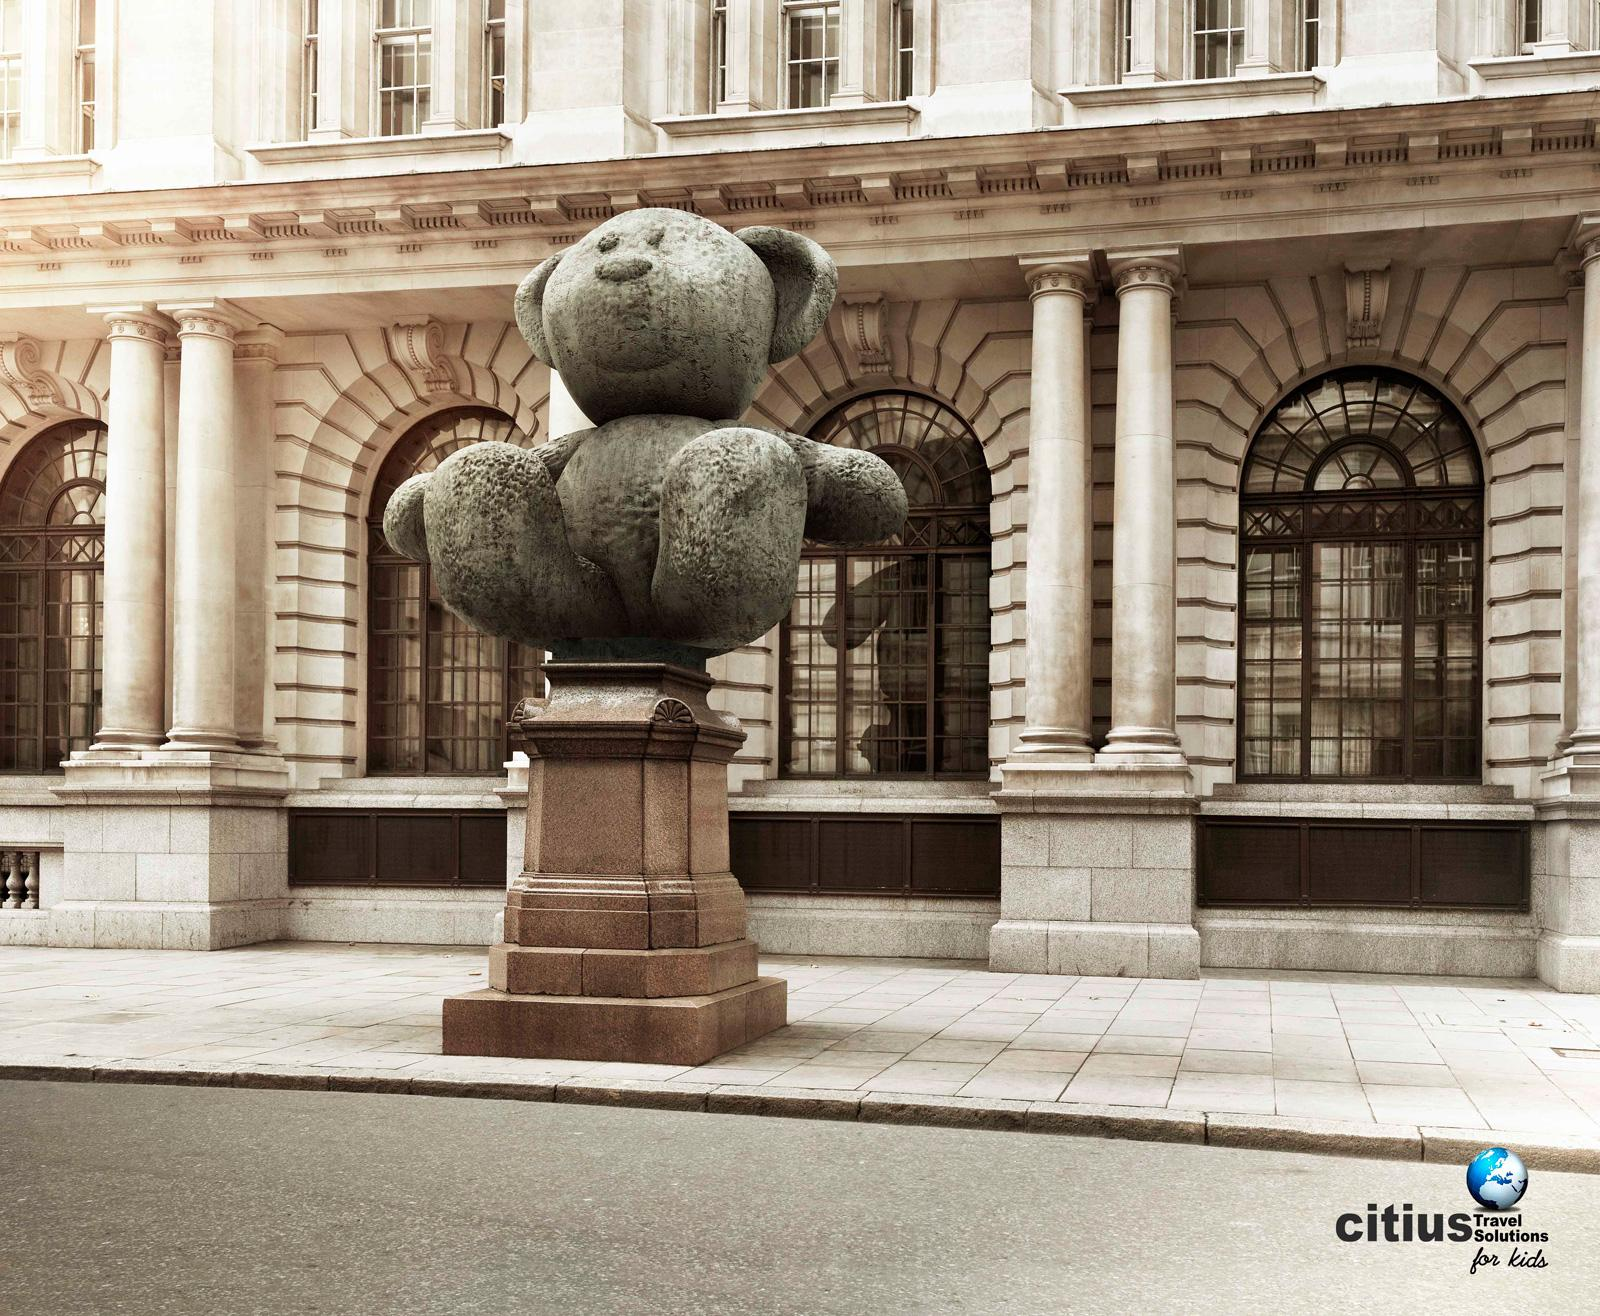 Citius Travel Solutions Print Ad -  Bunny